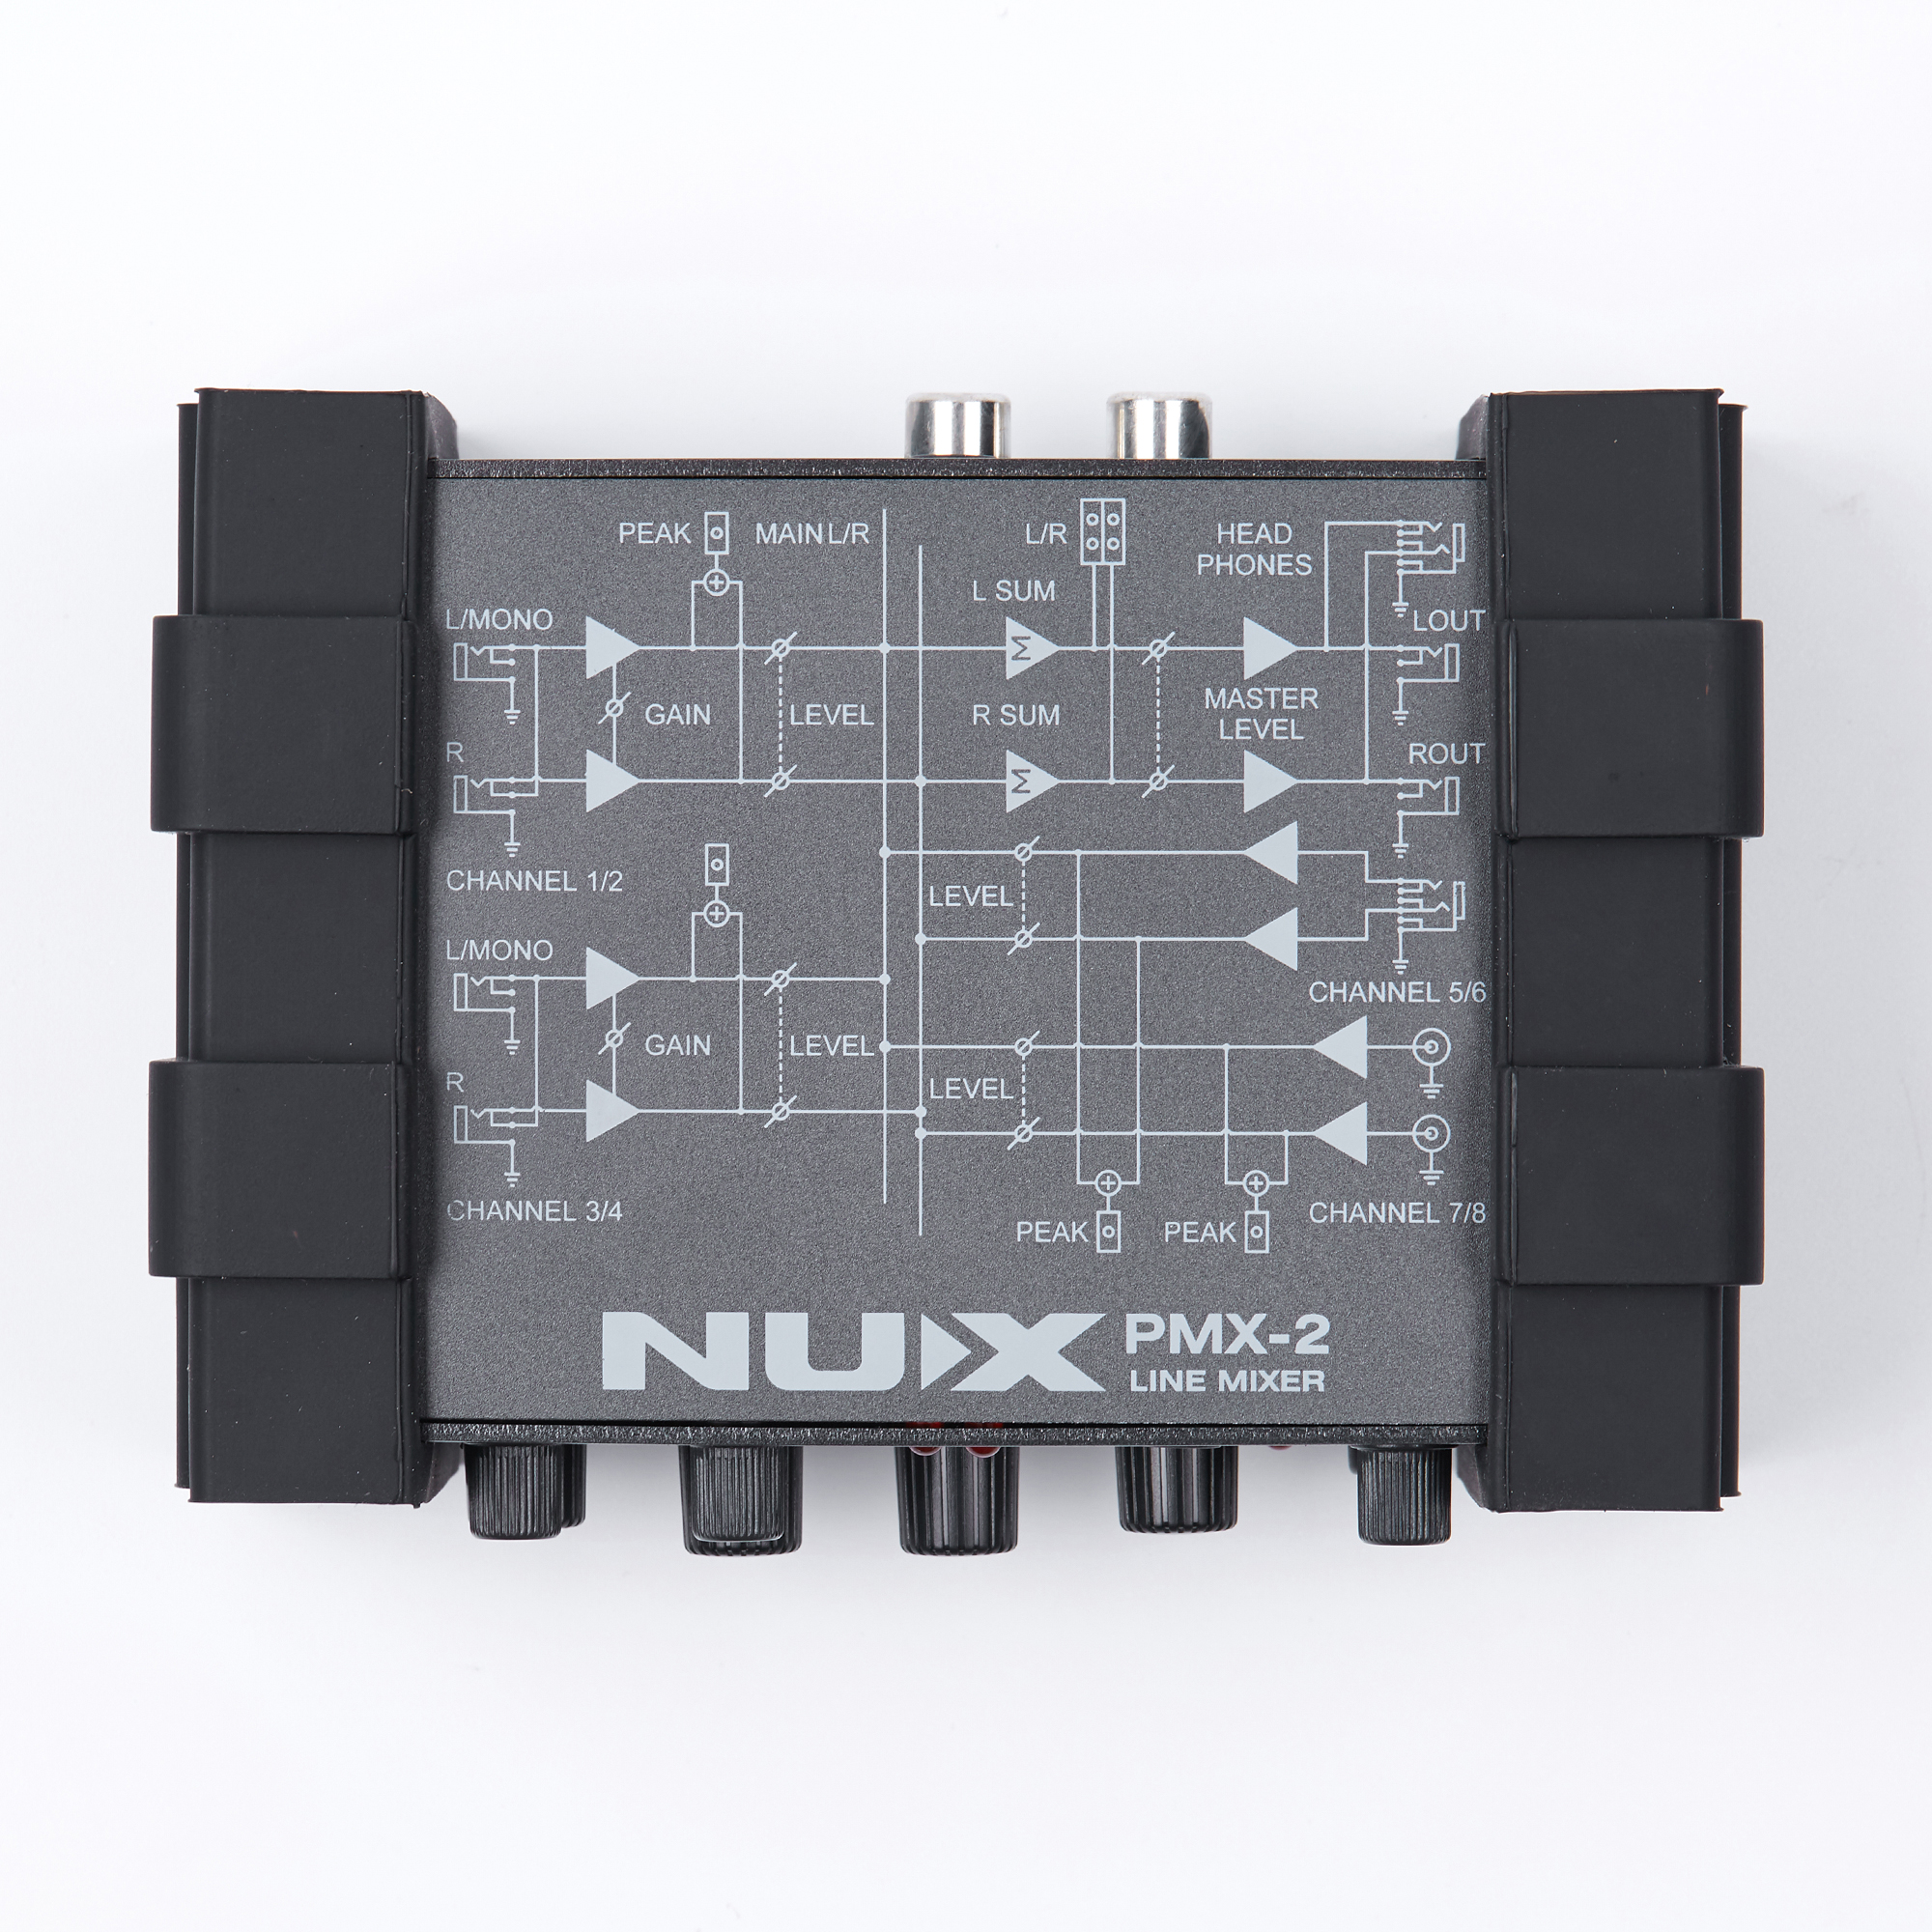 Gain Control 8 Inputs and 2 Outputs NUX PMX-2 Multi-Channel Mini Mixer 30 Musical Instruments Accessories for Guitar Bass Player irit ir 3139 фен